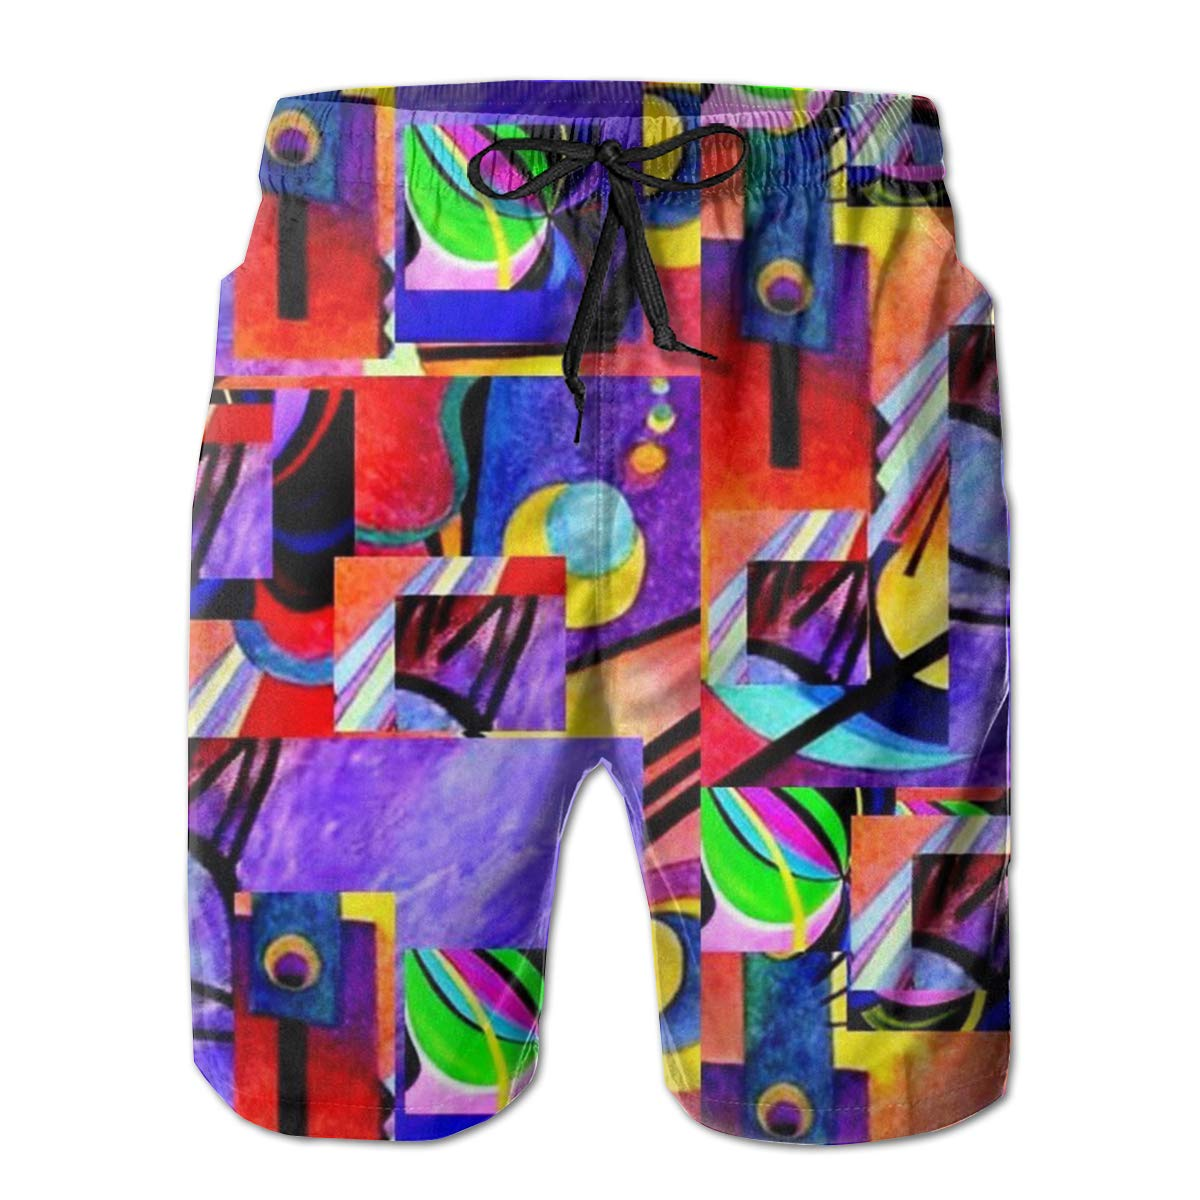 Swimsuit Novelty Sports Beach Shorts Men Teens Gift Running Board Shorts